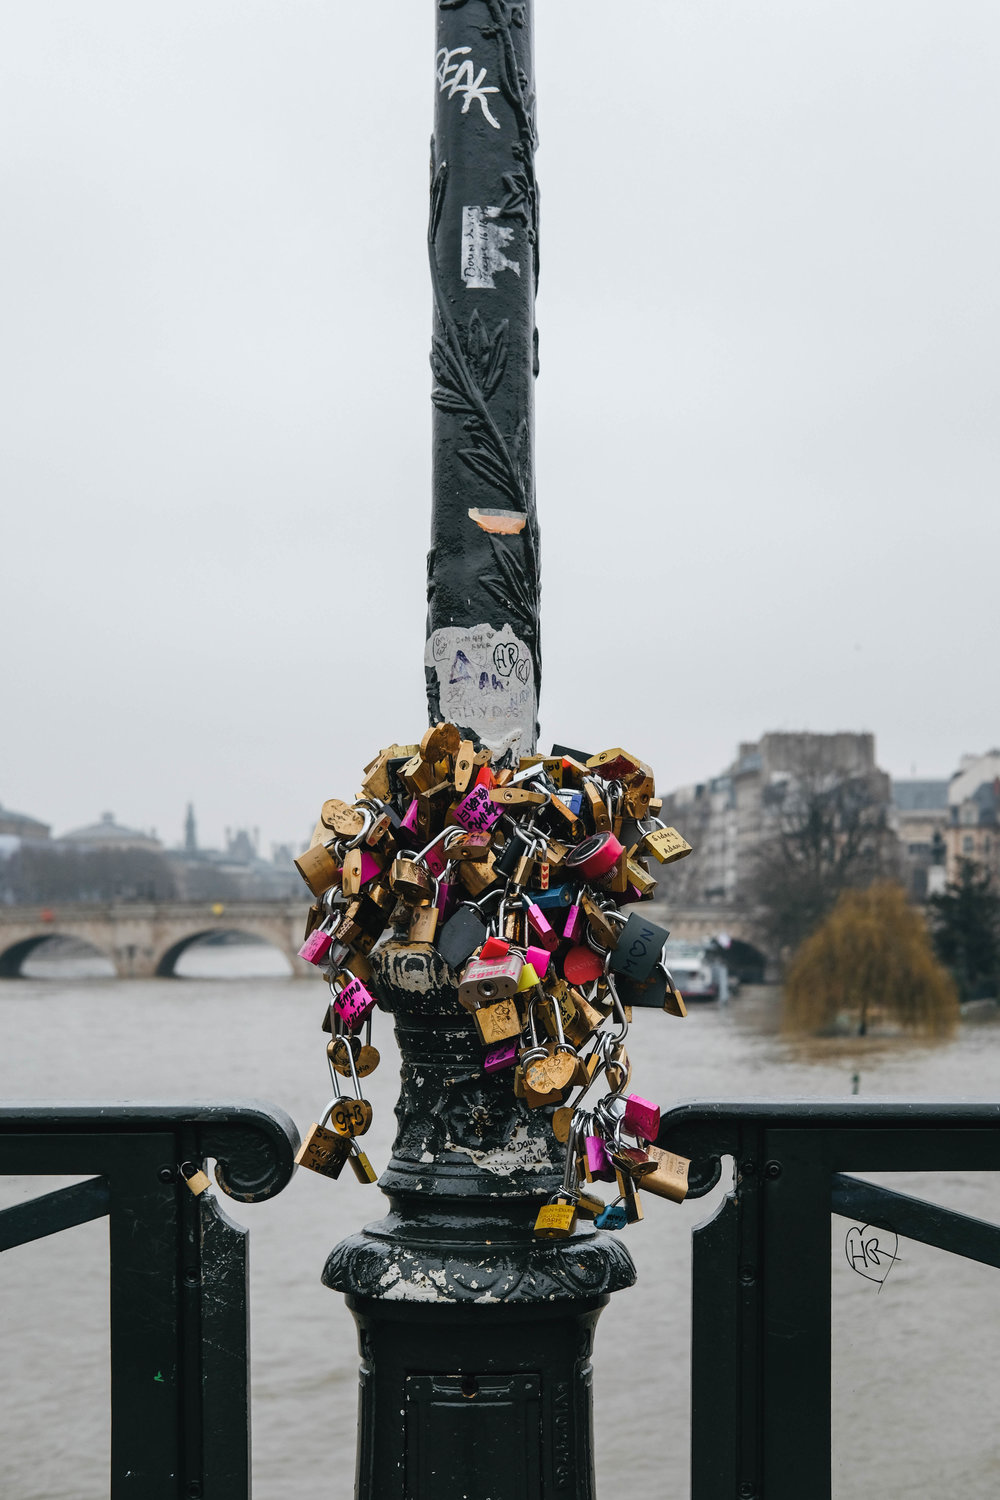 "<p style=""font-family:brandon-grotesque;font-weight:500; font-size:11px; text-center:left; color:light grey;letter-spacing: 1px"">JANUARY 11, 2018 • LOCKS OF LOVE • 📍Paris, France 🇫🇷</p>"